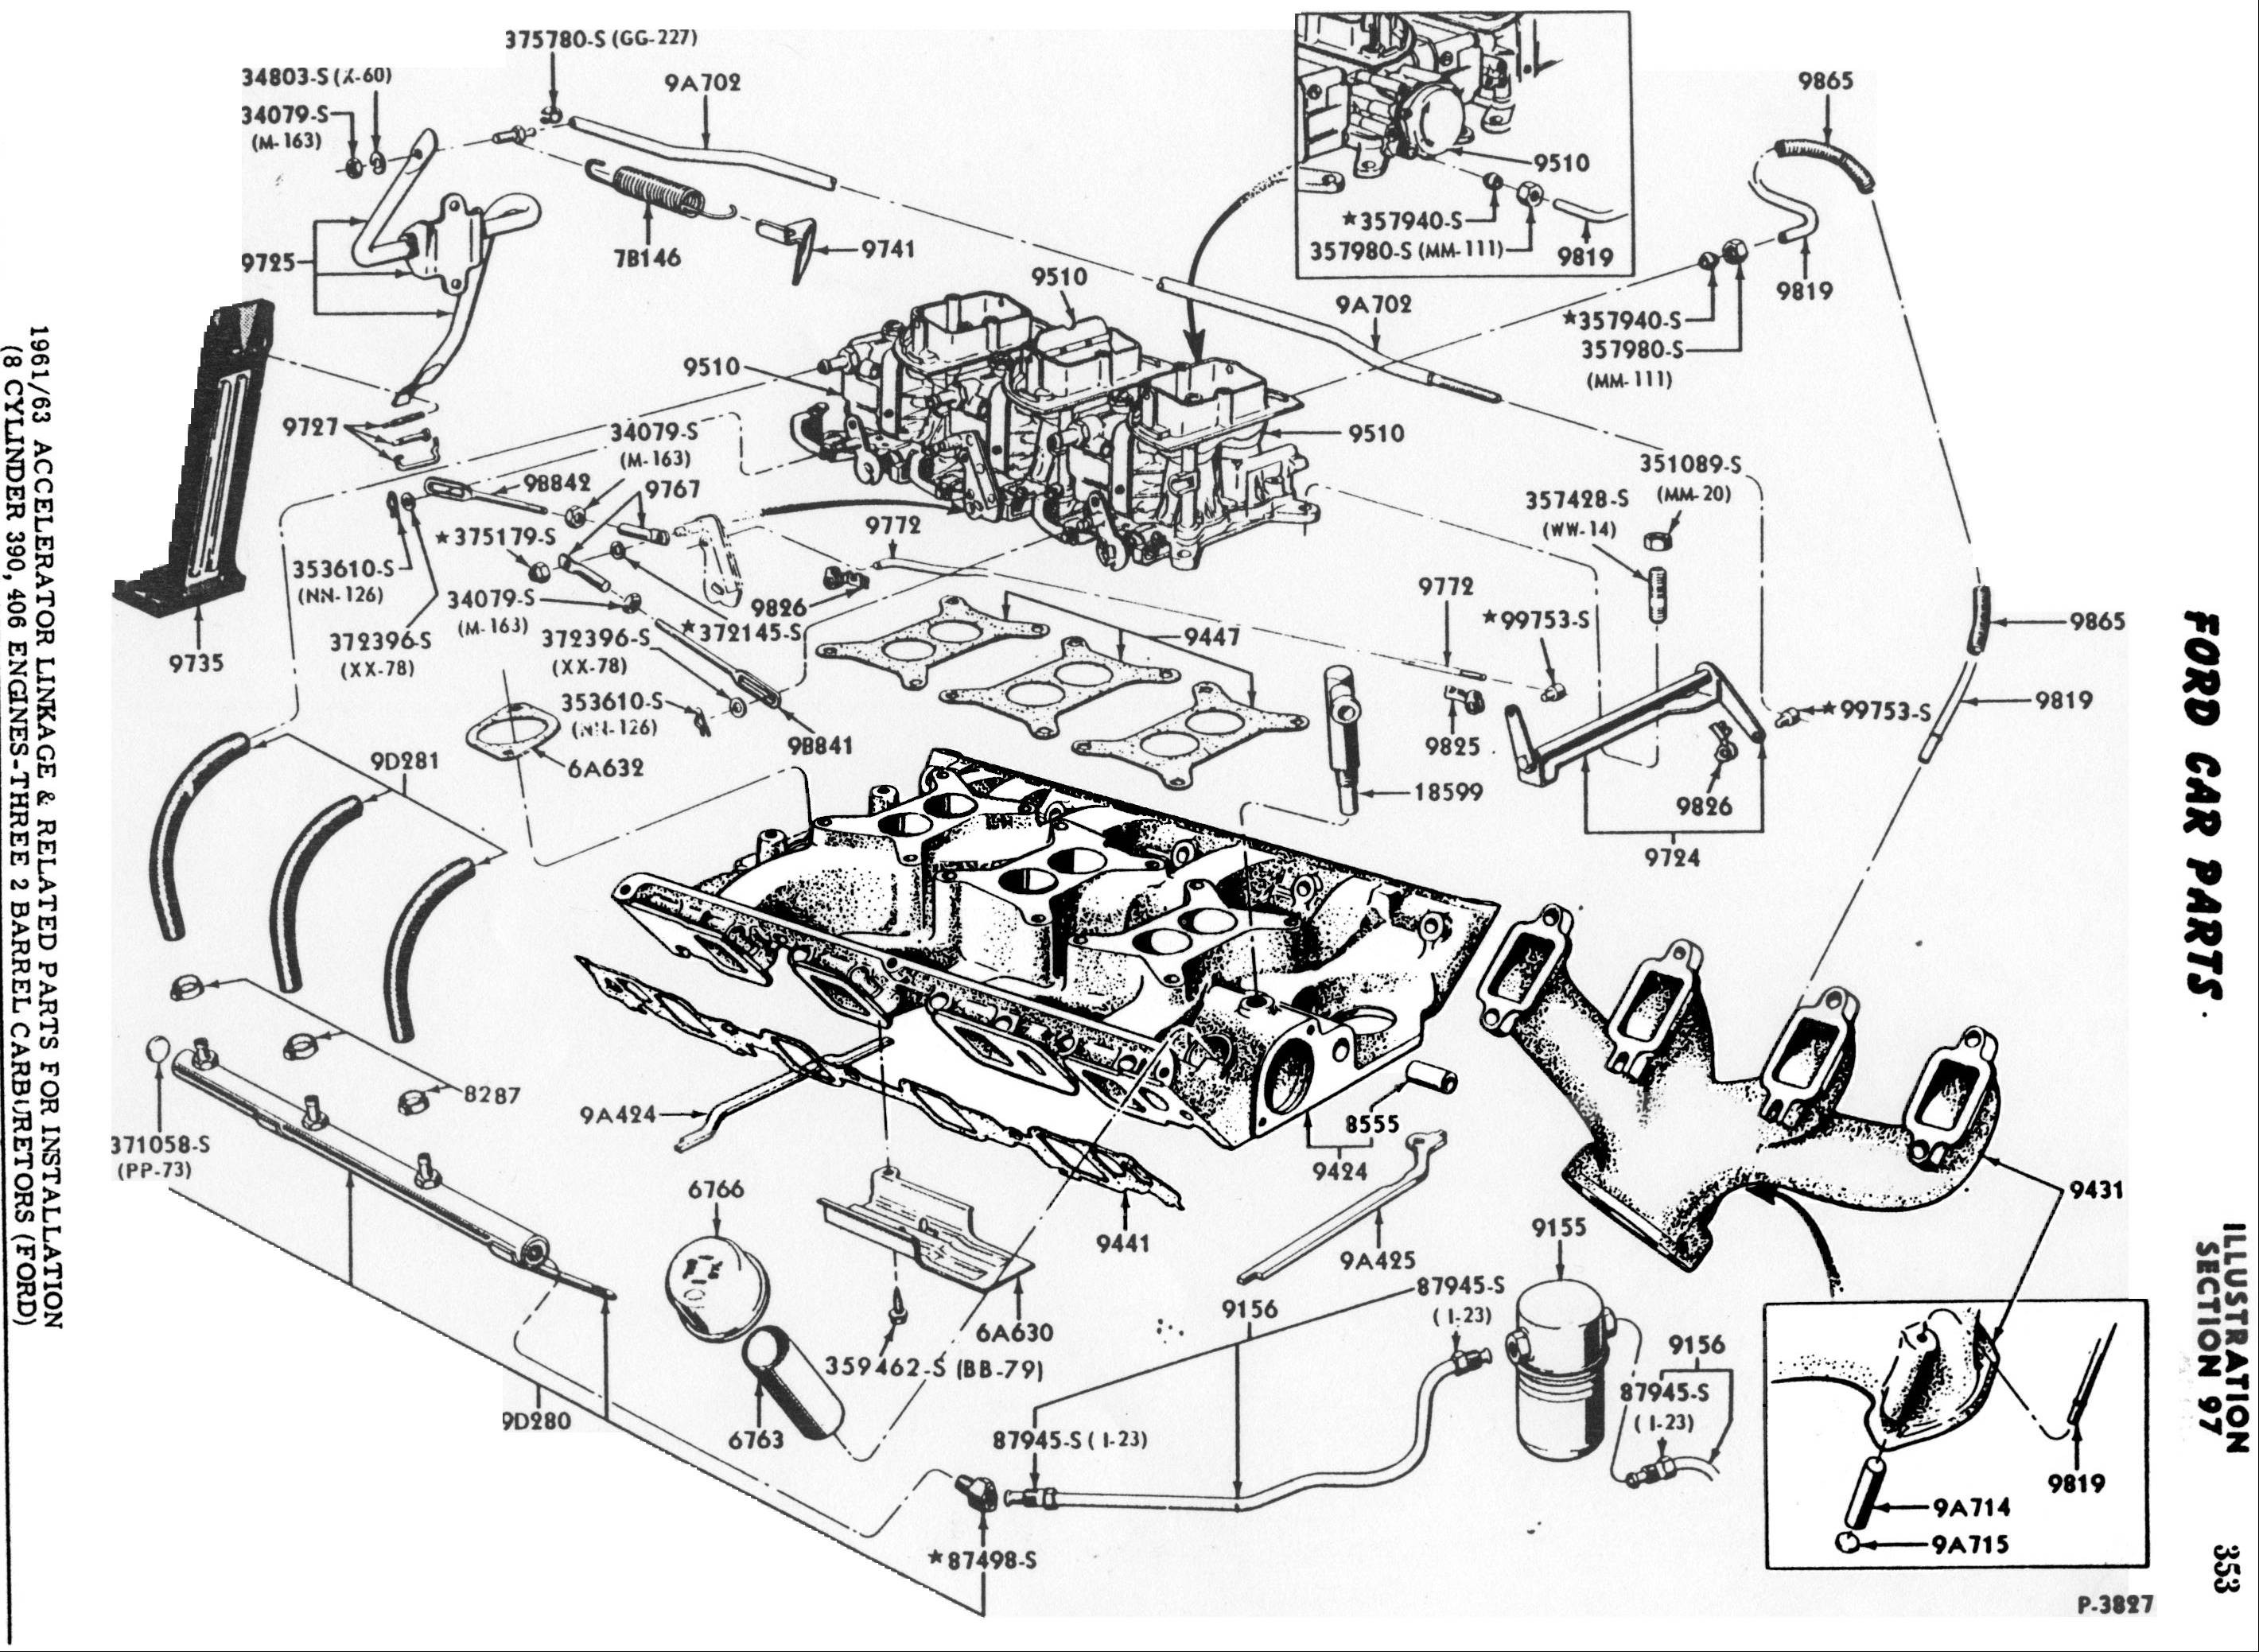 1978 ford 460 engine diagram  u2022 wiring diagram for free